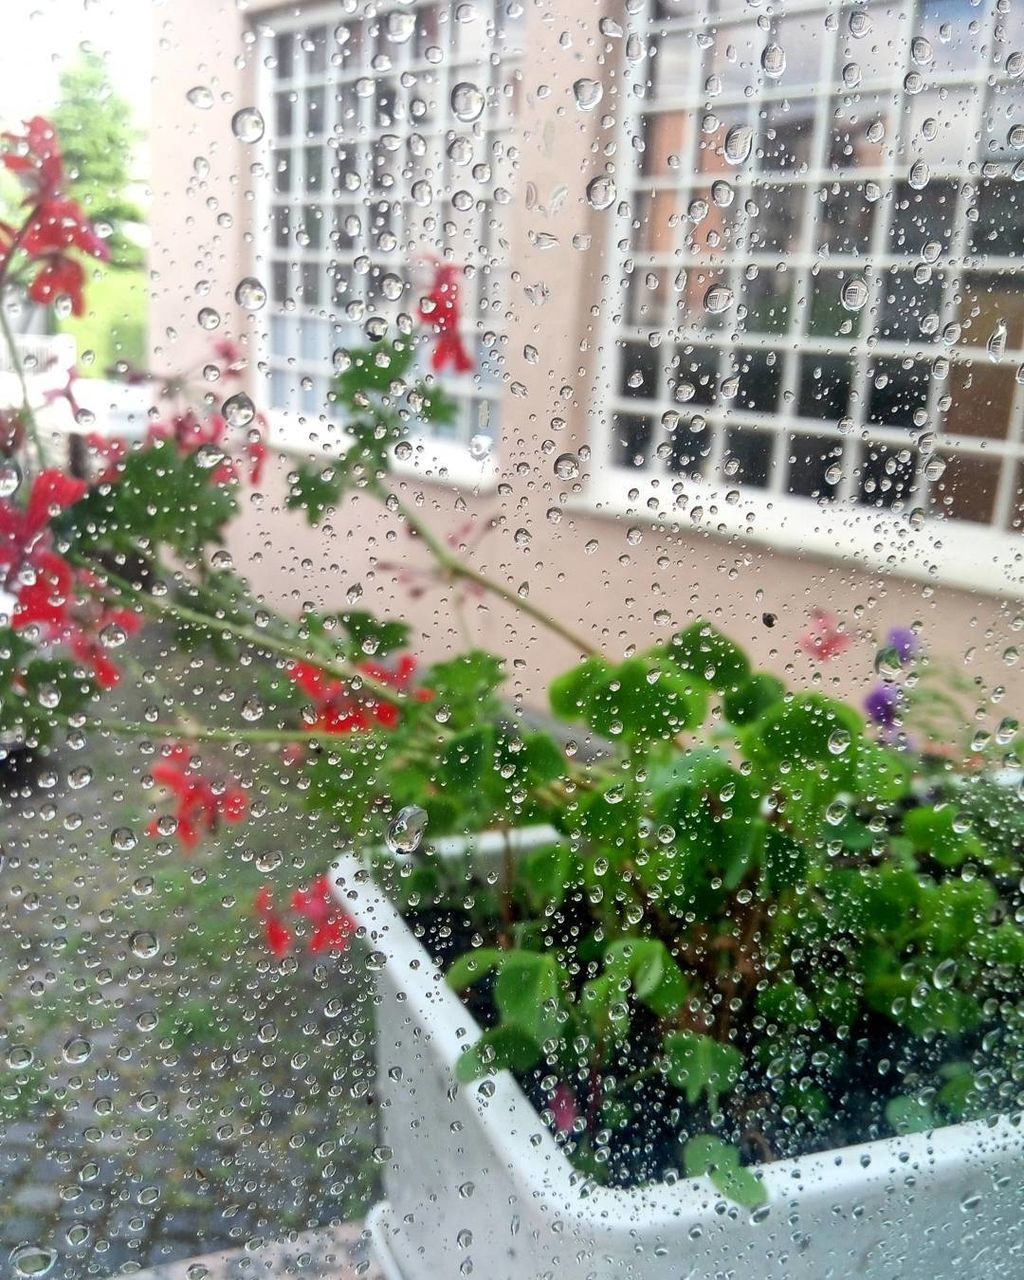 window, rain, wet, weather, drop, raindrop, street, water, building exterior, car, day, architecture, no people, looking through window, built structure, city, growth, land vehicle, outdoors, road, nature, tree, freshness, close-up